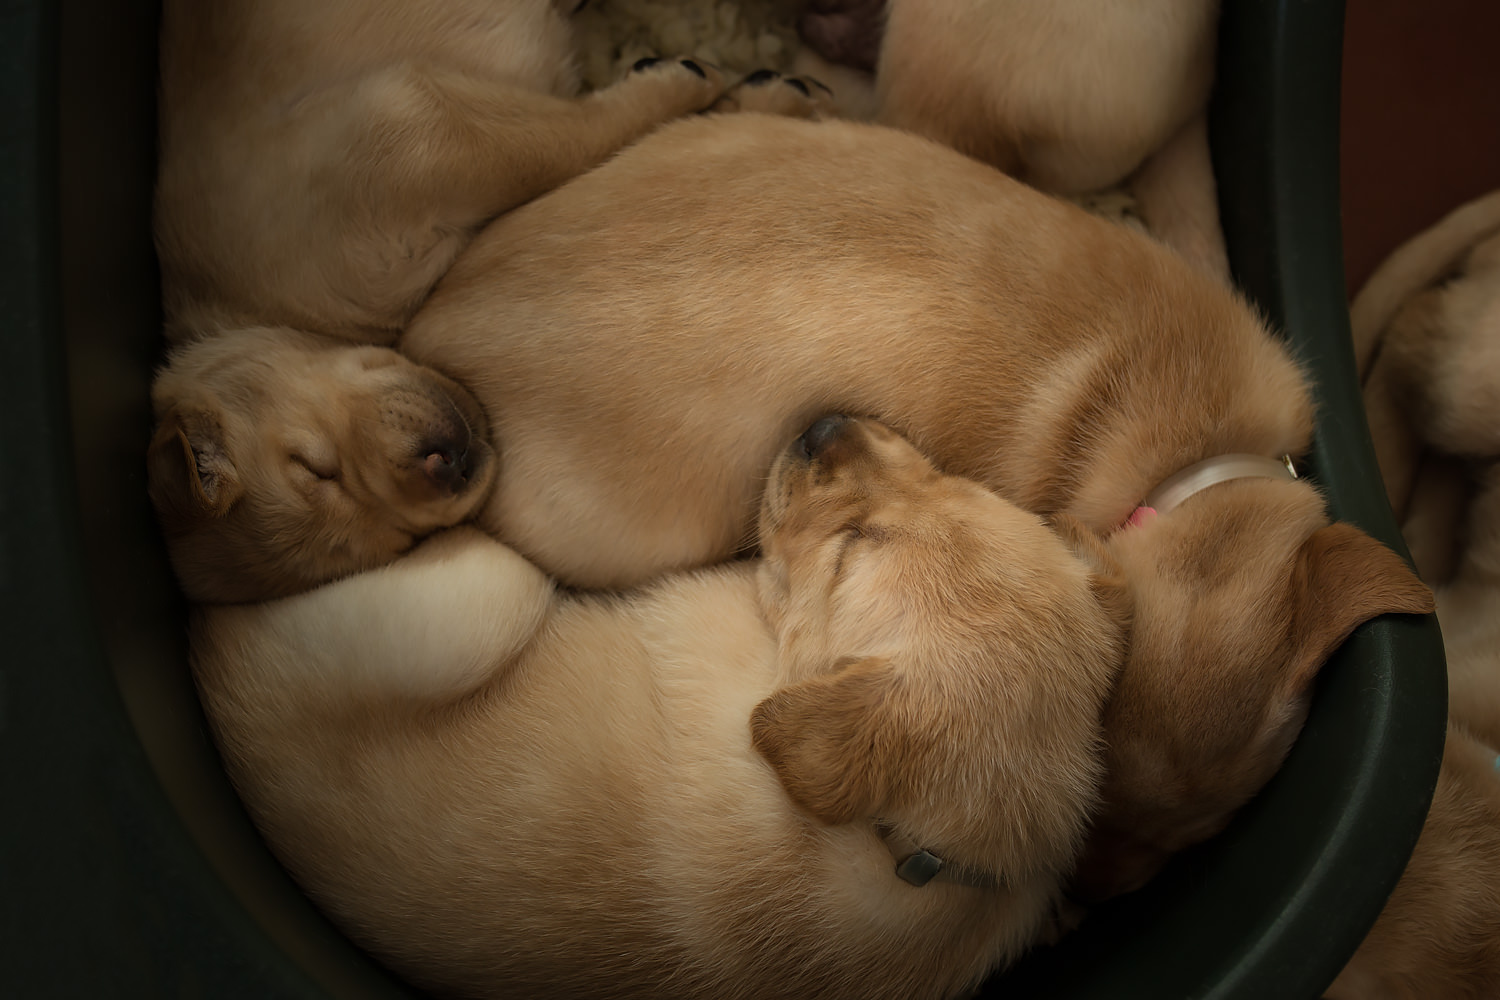 Guiding Eyes pups curled up sleeping in a feed tub.